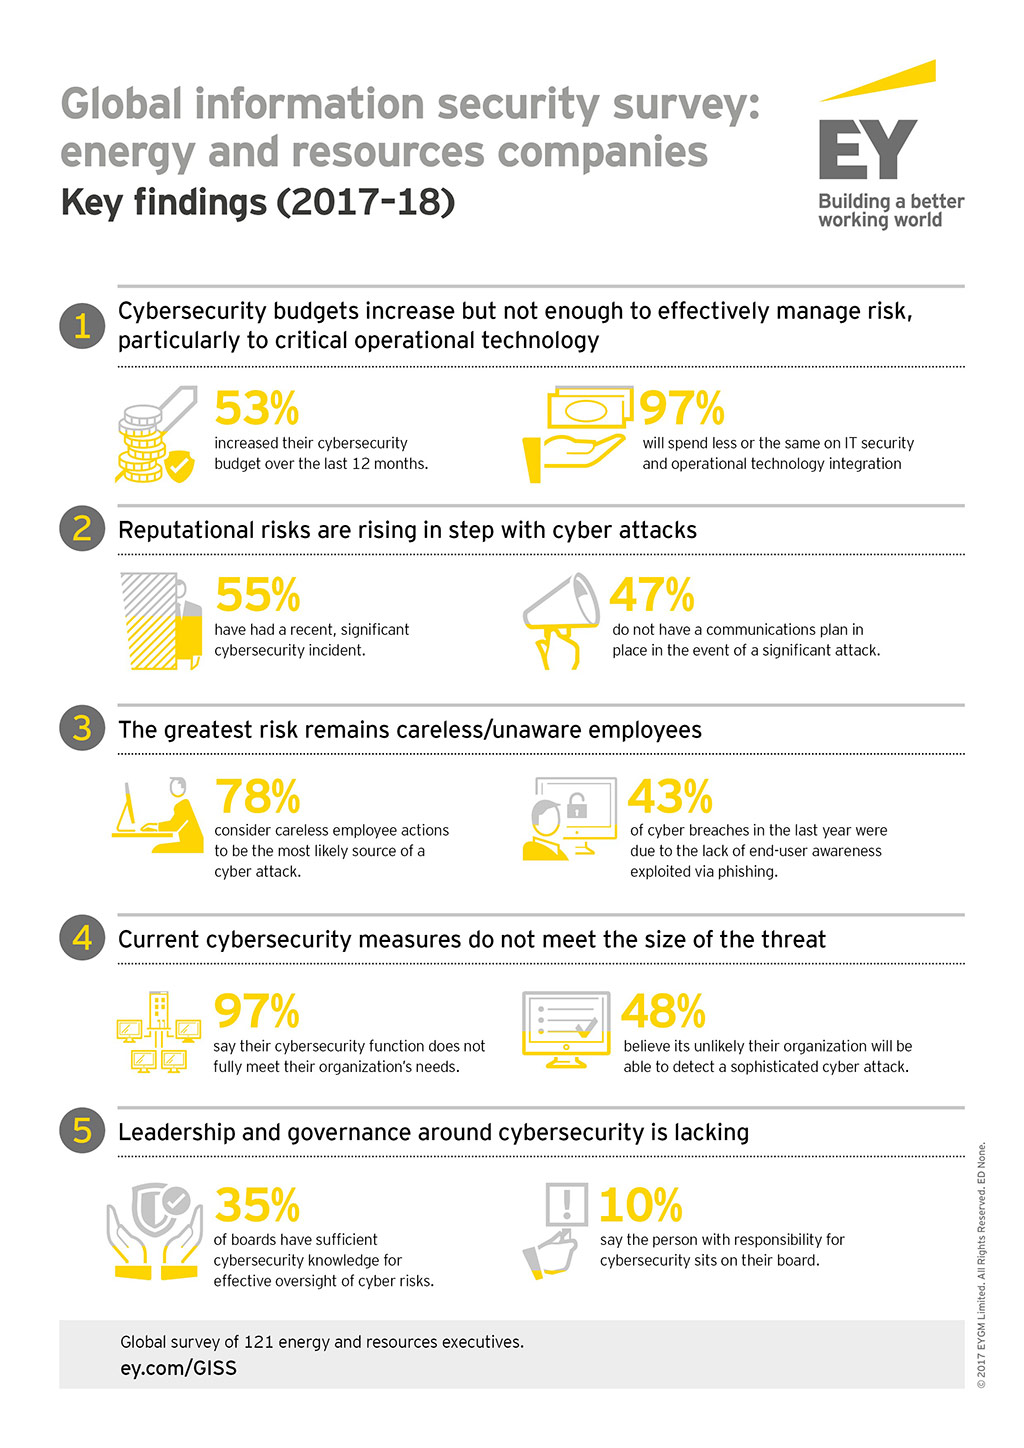 EY - Historic shift of risks